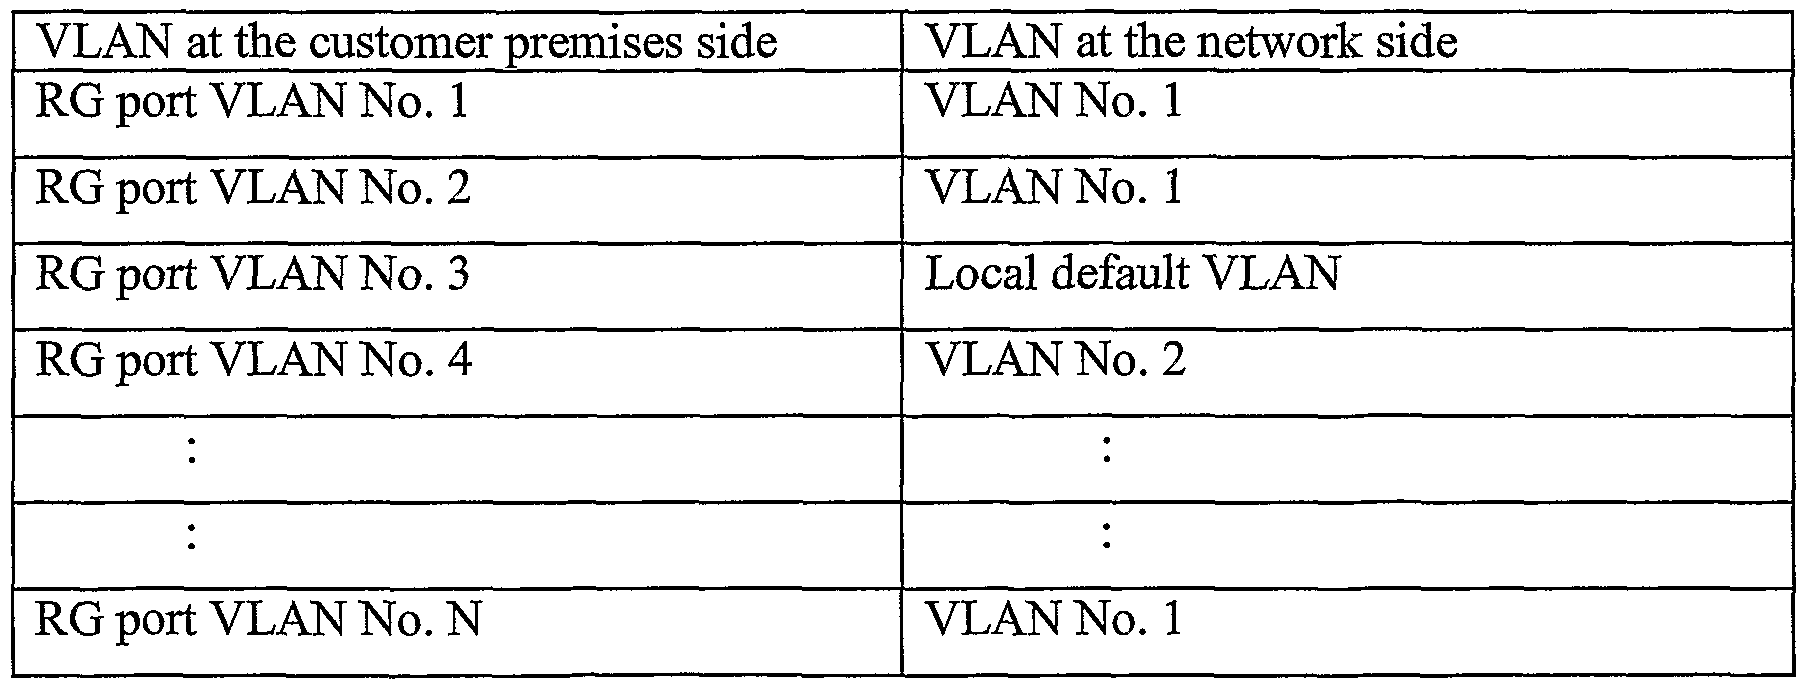 WO2006118530A1 - Operator shop selection in broadband access